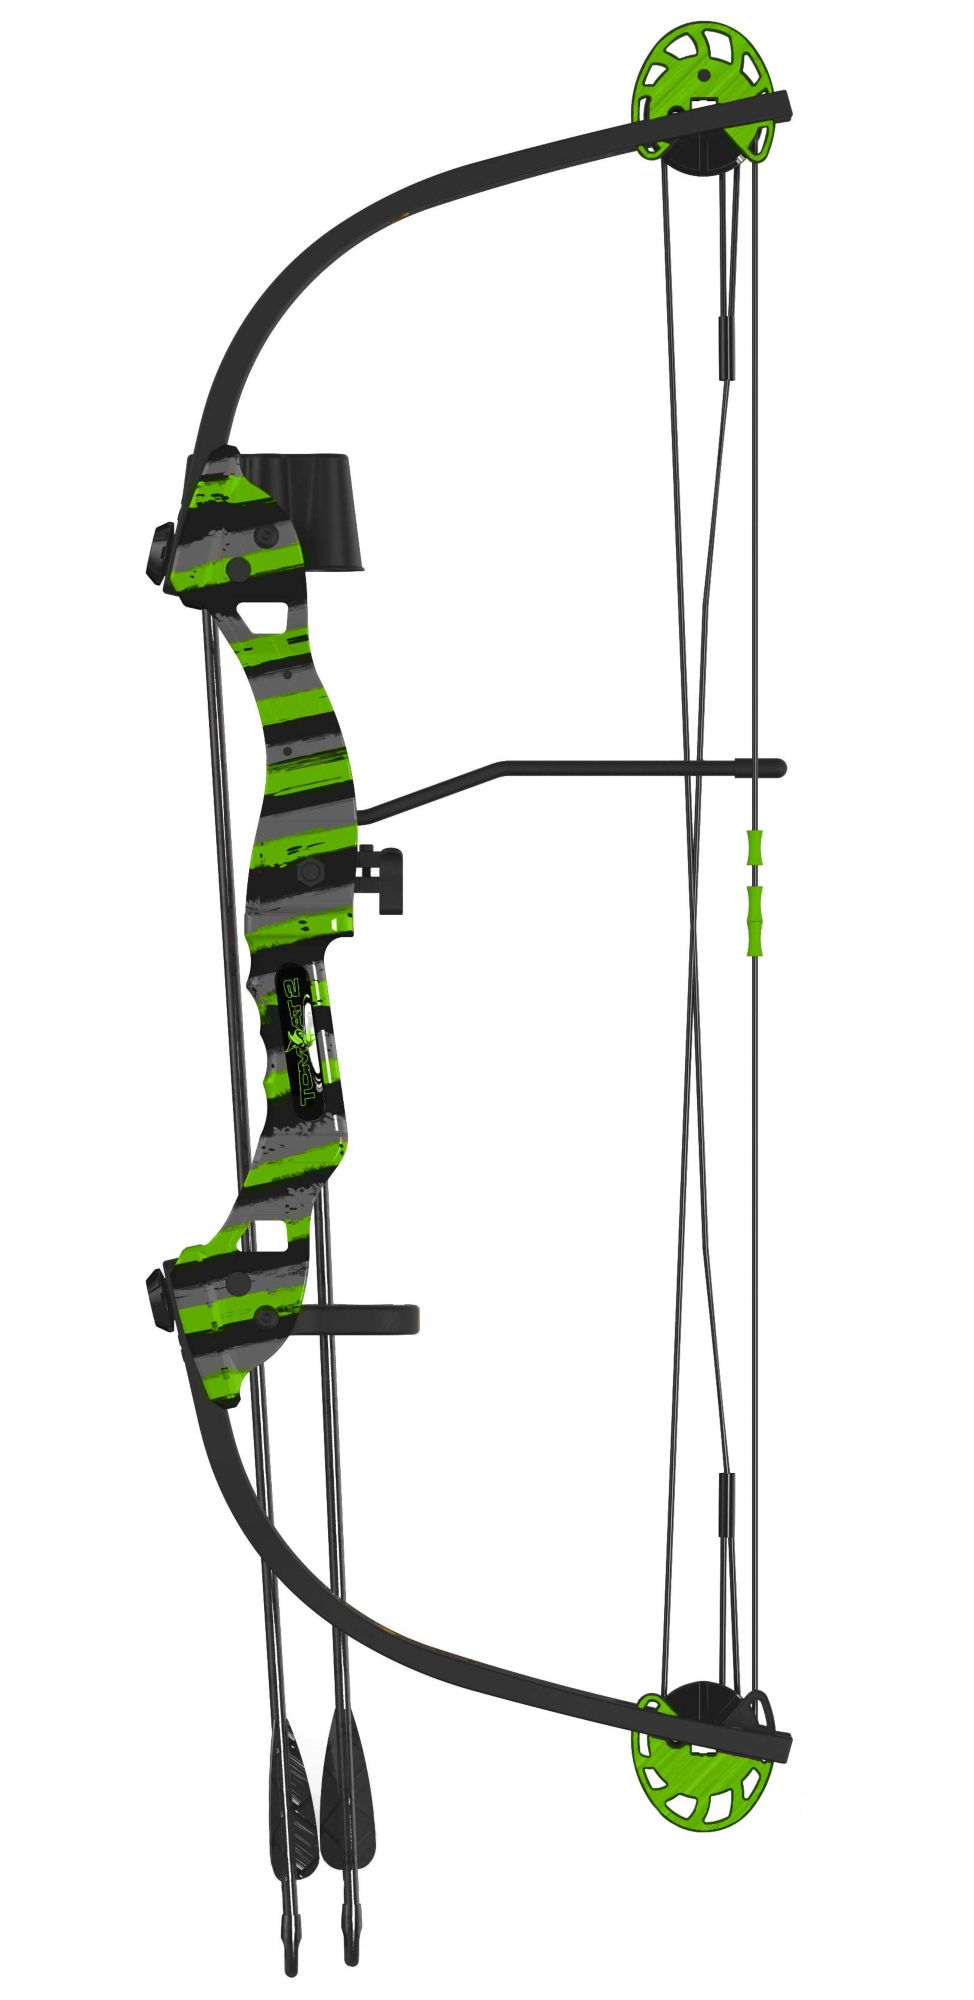 Barnett Tomcat 2 Youth Compound Bow Package, Size: Small thumbnail